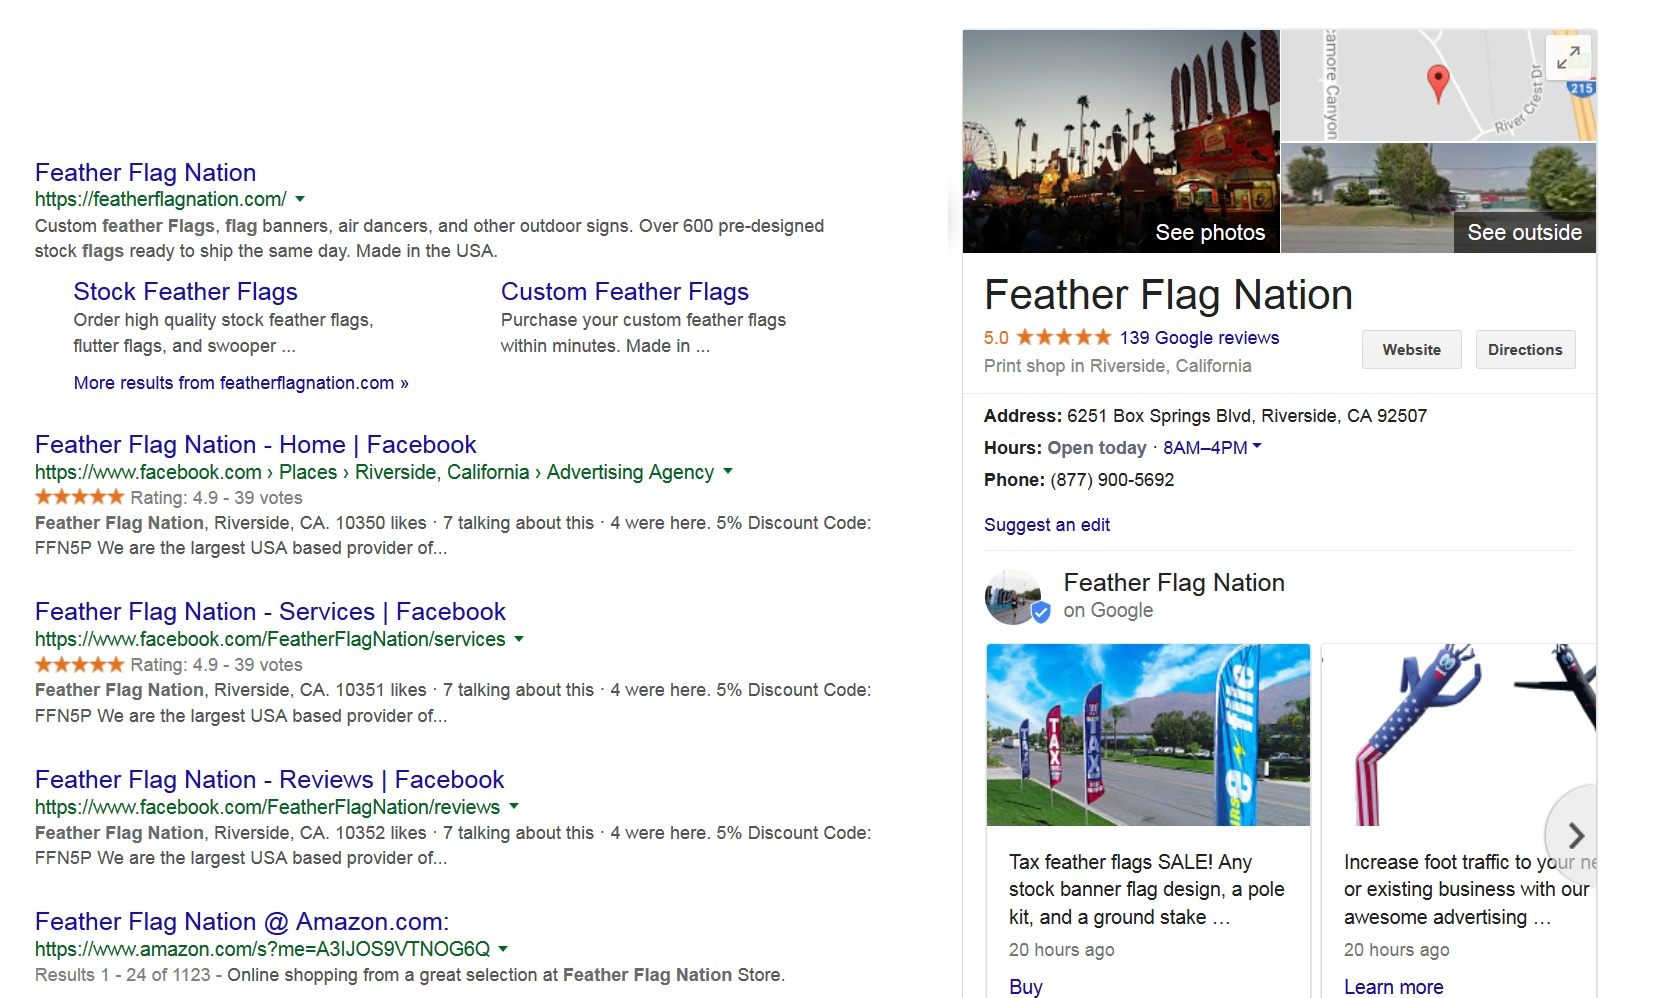 Feather Flag Nation Storefront